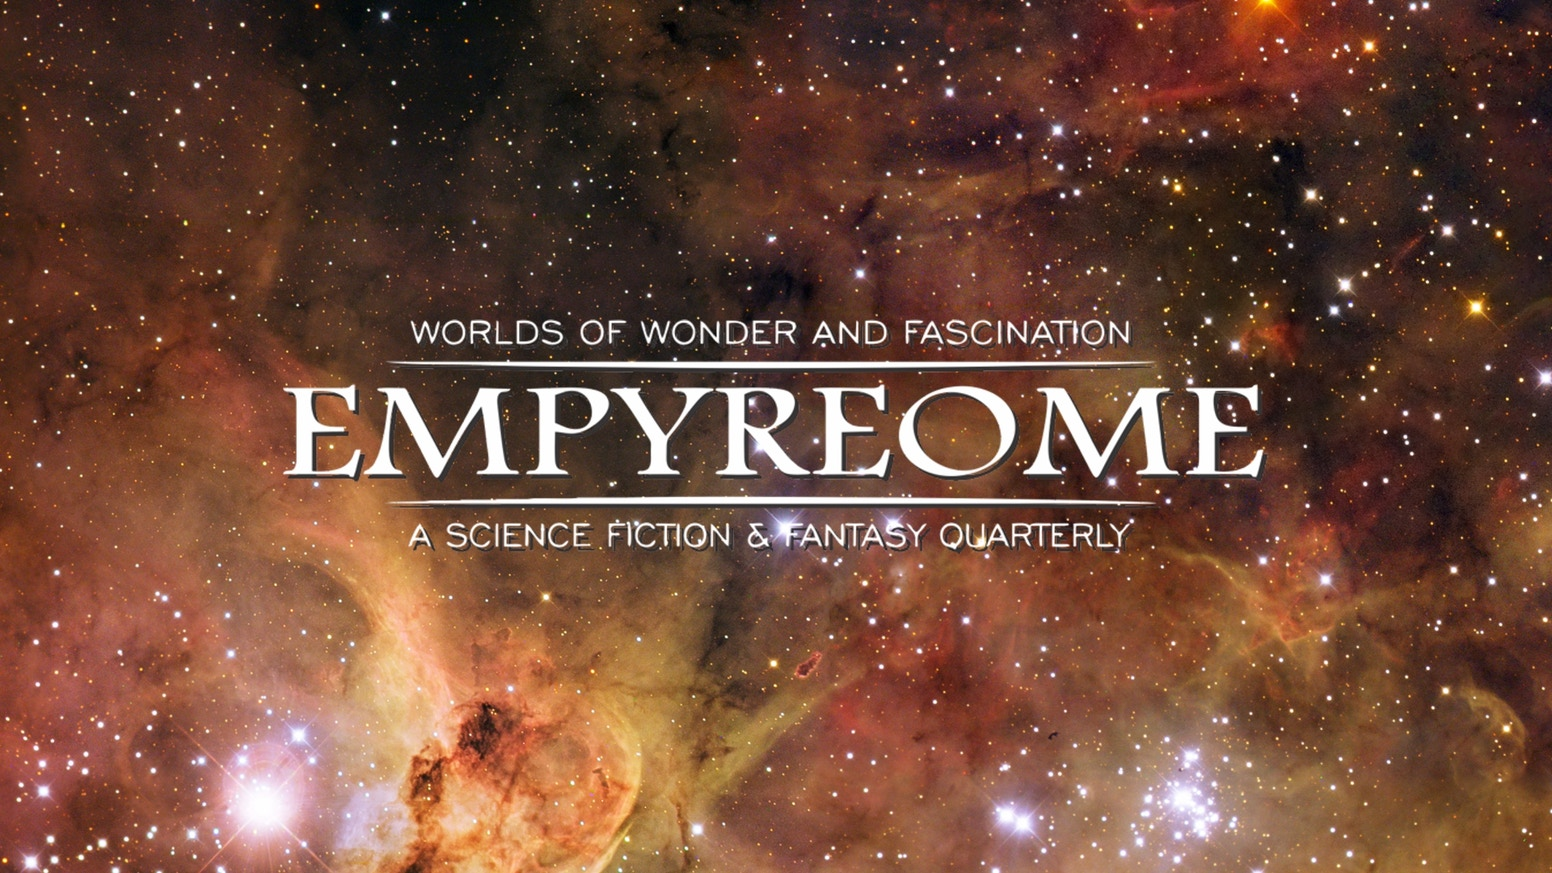 Empyreome is a quarterly online magazine dedicated to publishing high quality science fiction, fantasy, and other speculative fiction.